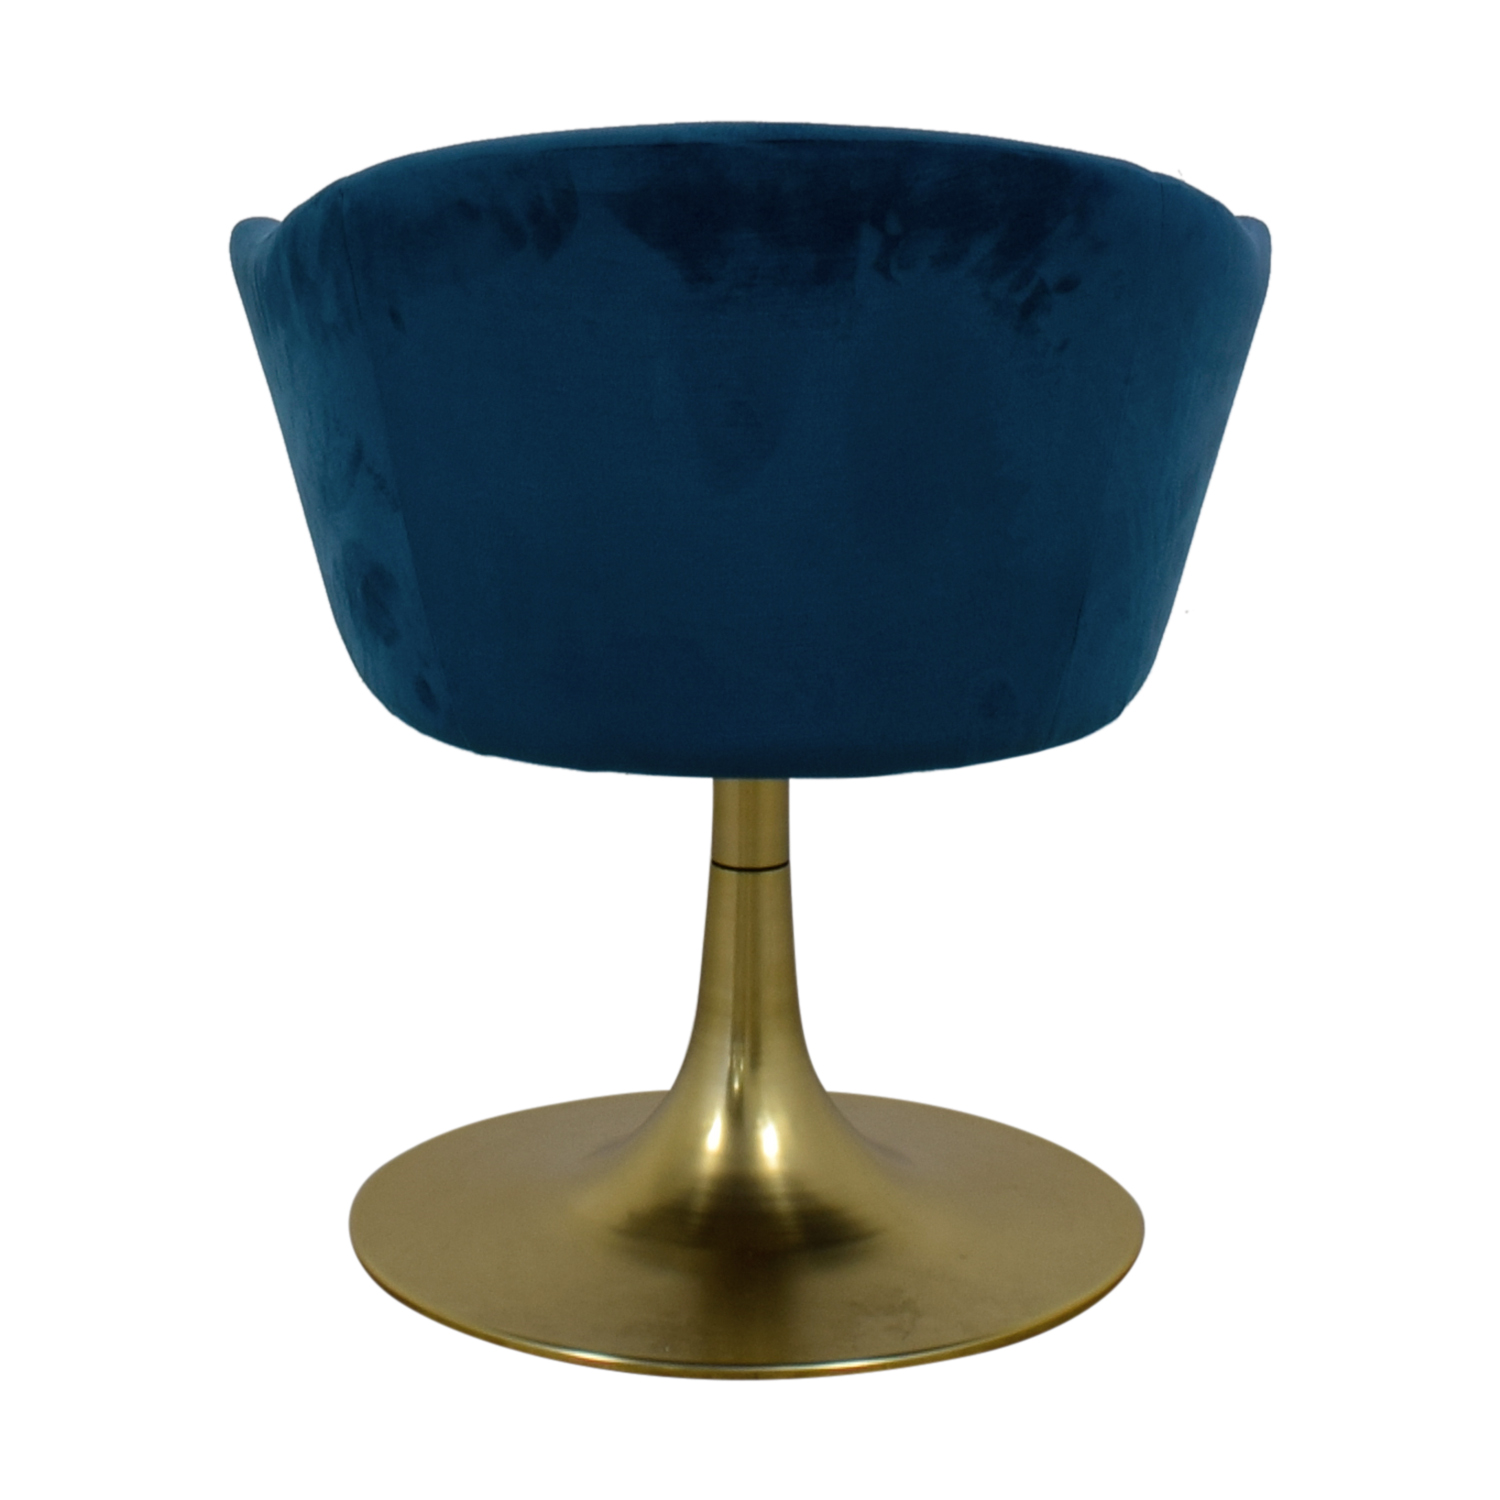 West Elm West Elm Bond Blue Velvet Swivel Chair